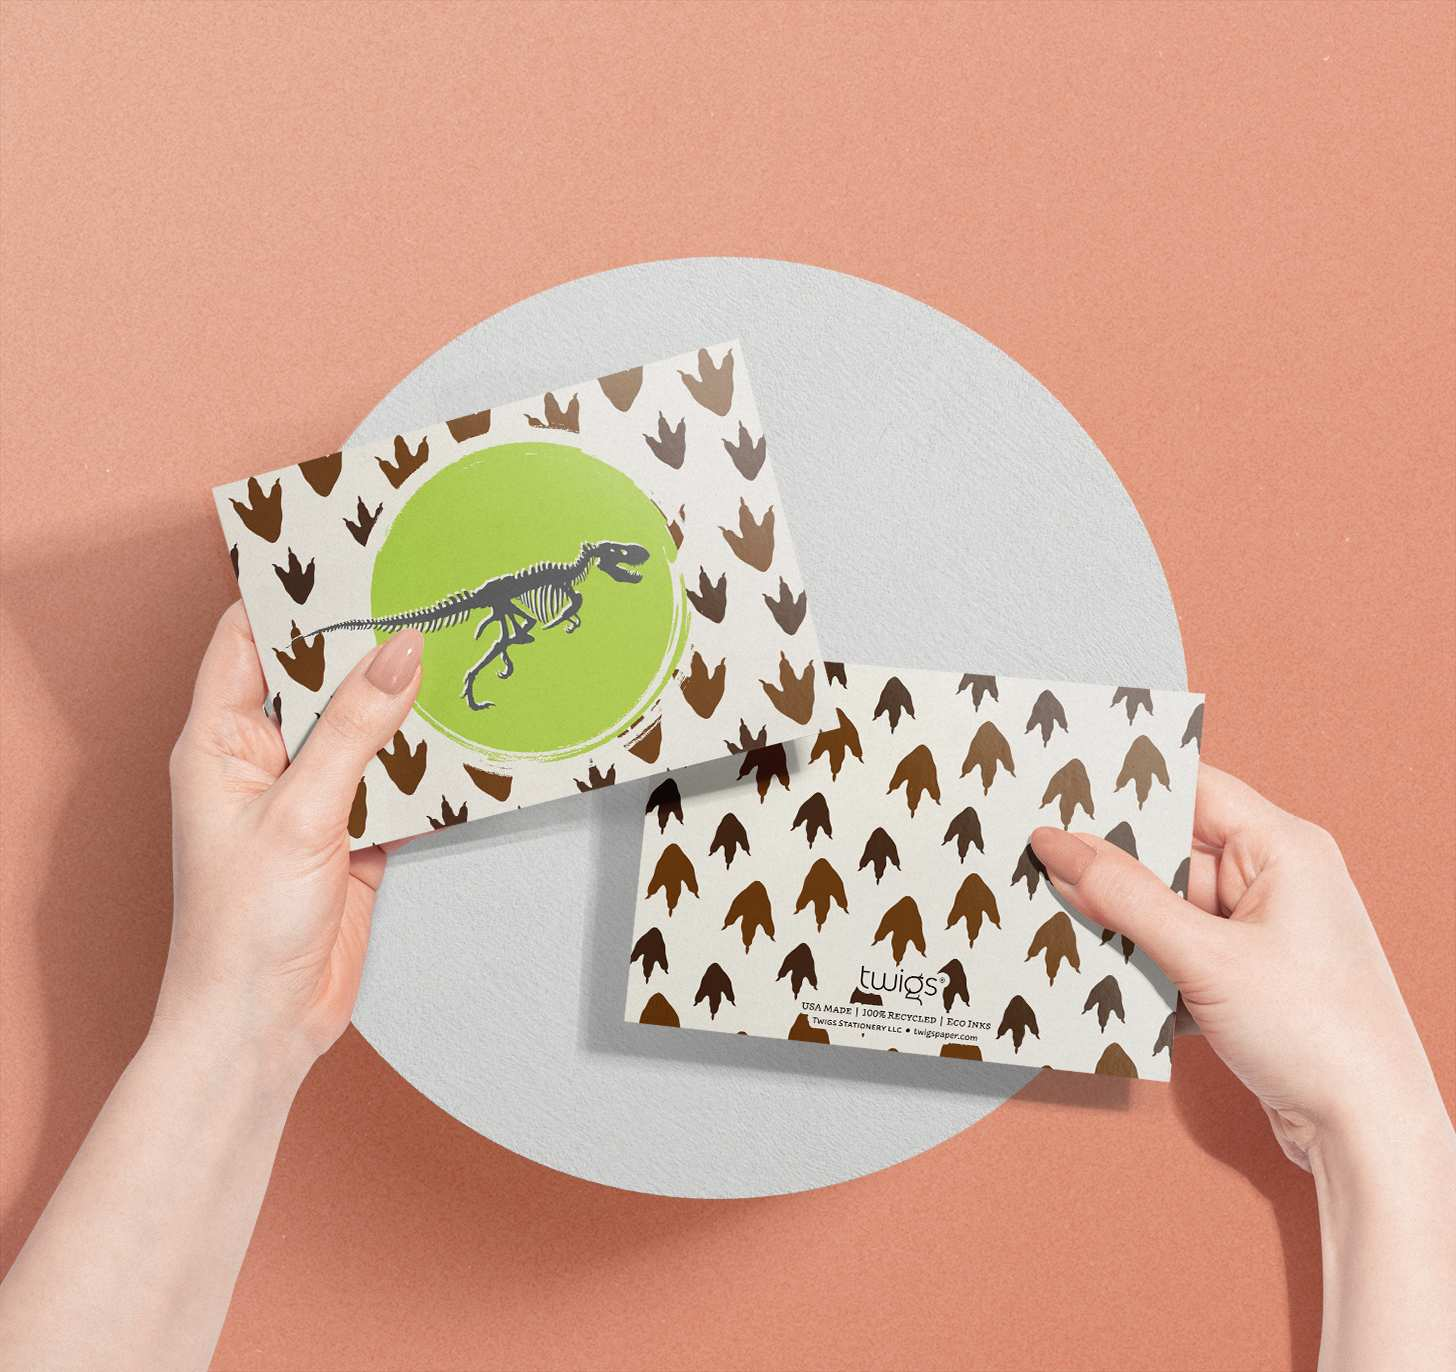 Woman's hand holding T-Rex bones with footprints design card